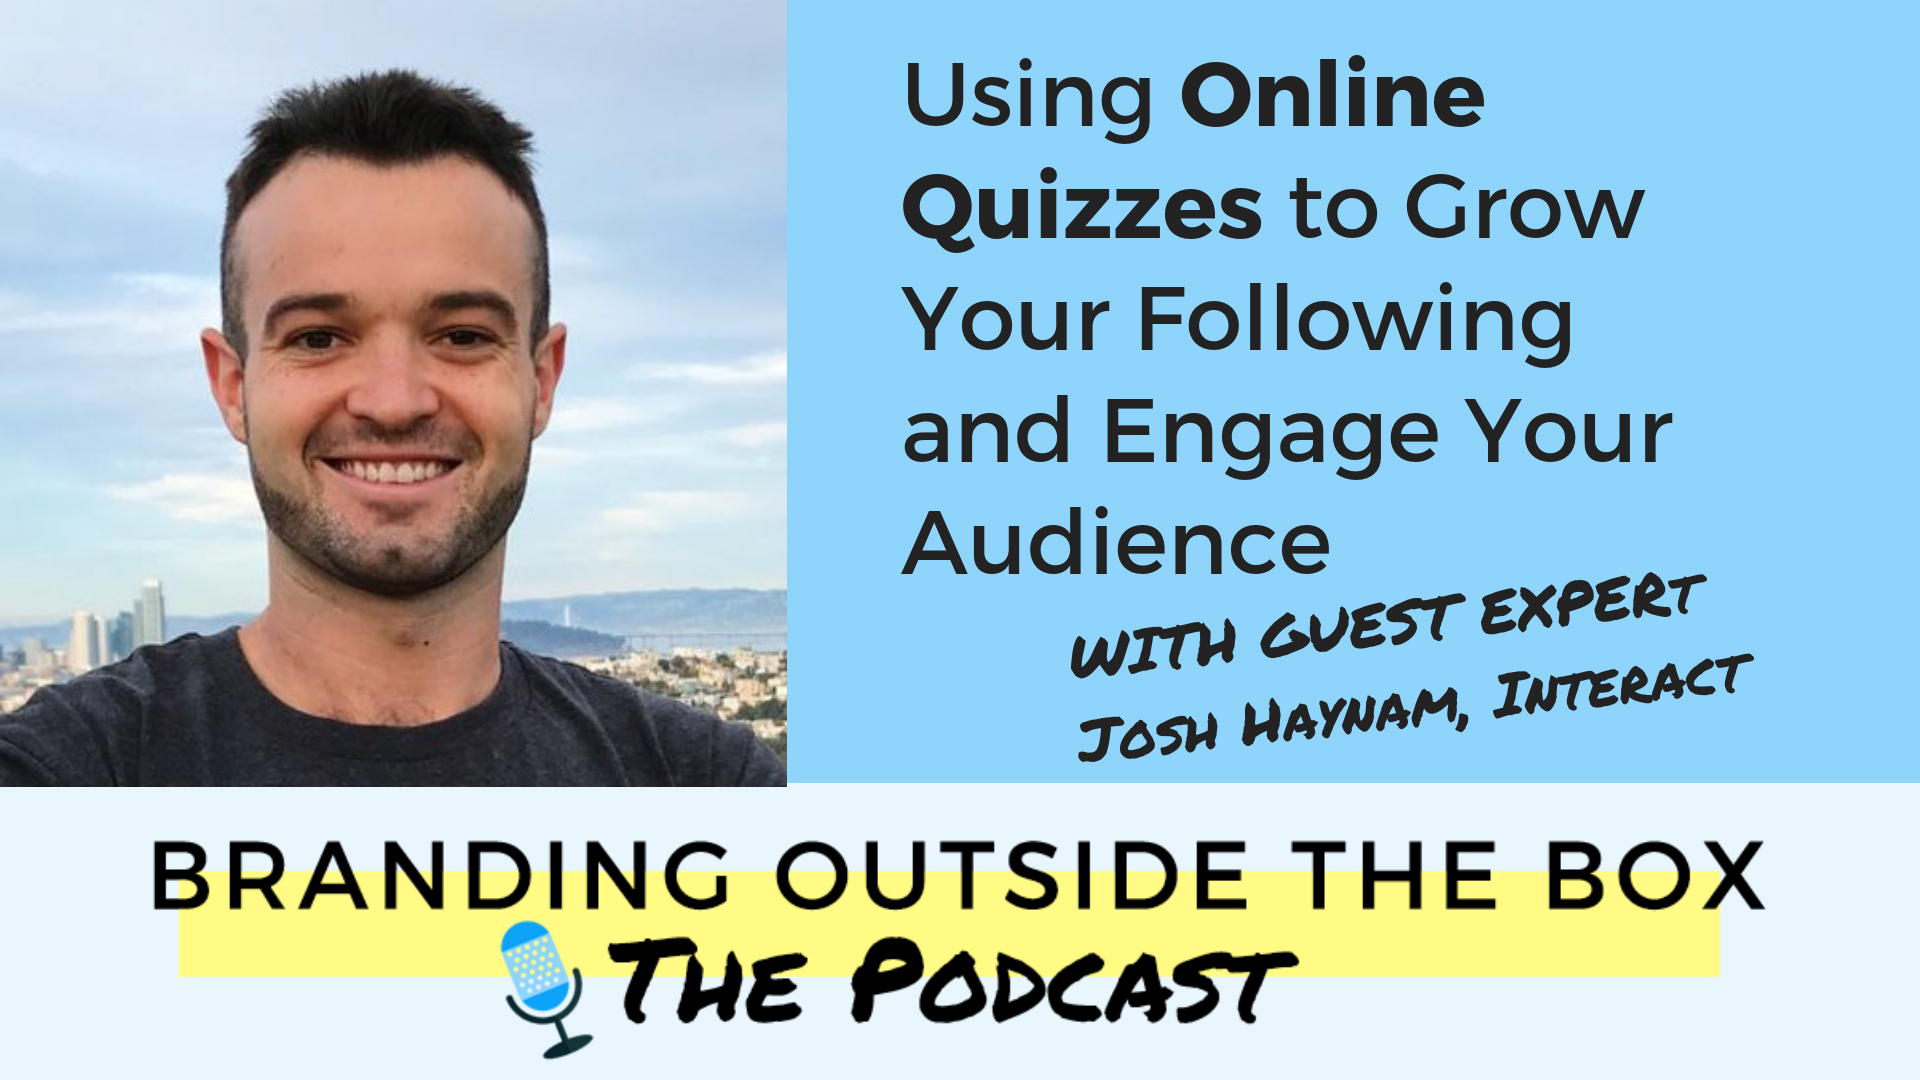 Using Online Quizzes to Grow Your Following and Engage Your Audience